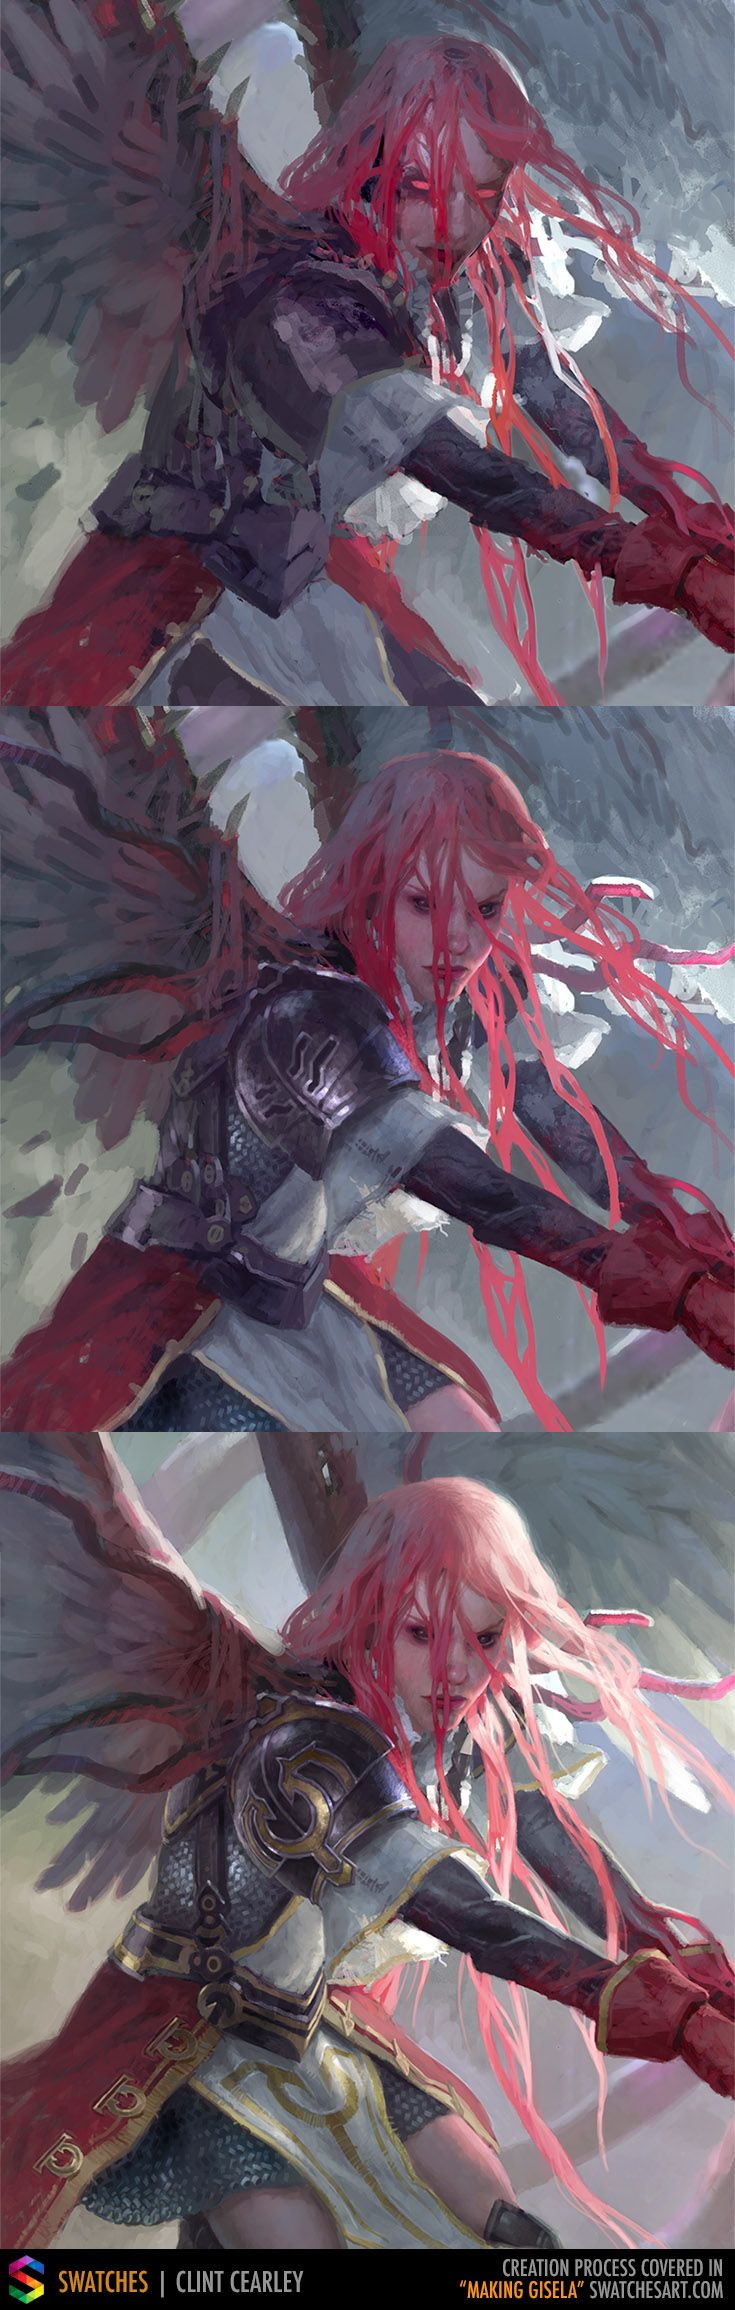 Painting stages for Gisela, The Broken Blade which was created for Magic: The Gathering